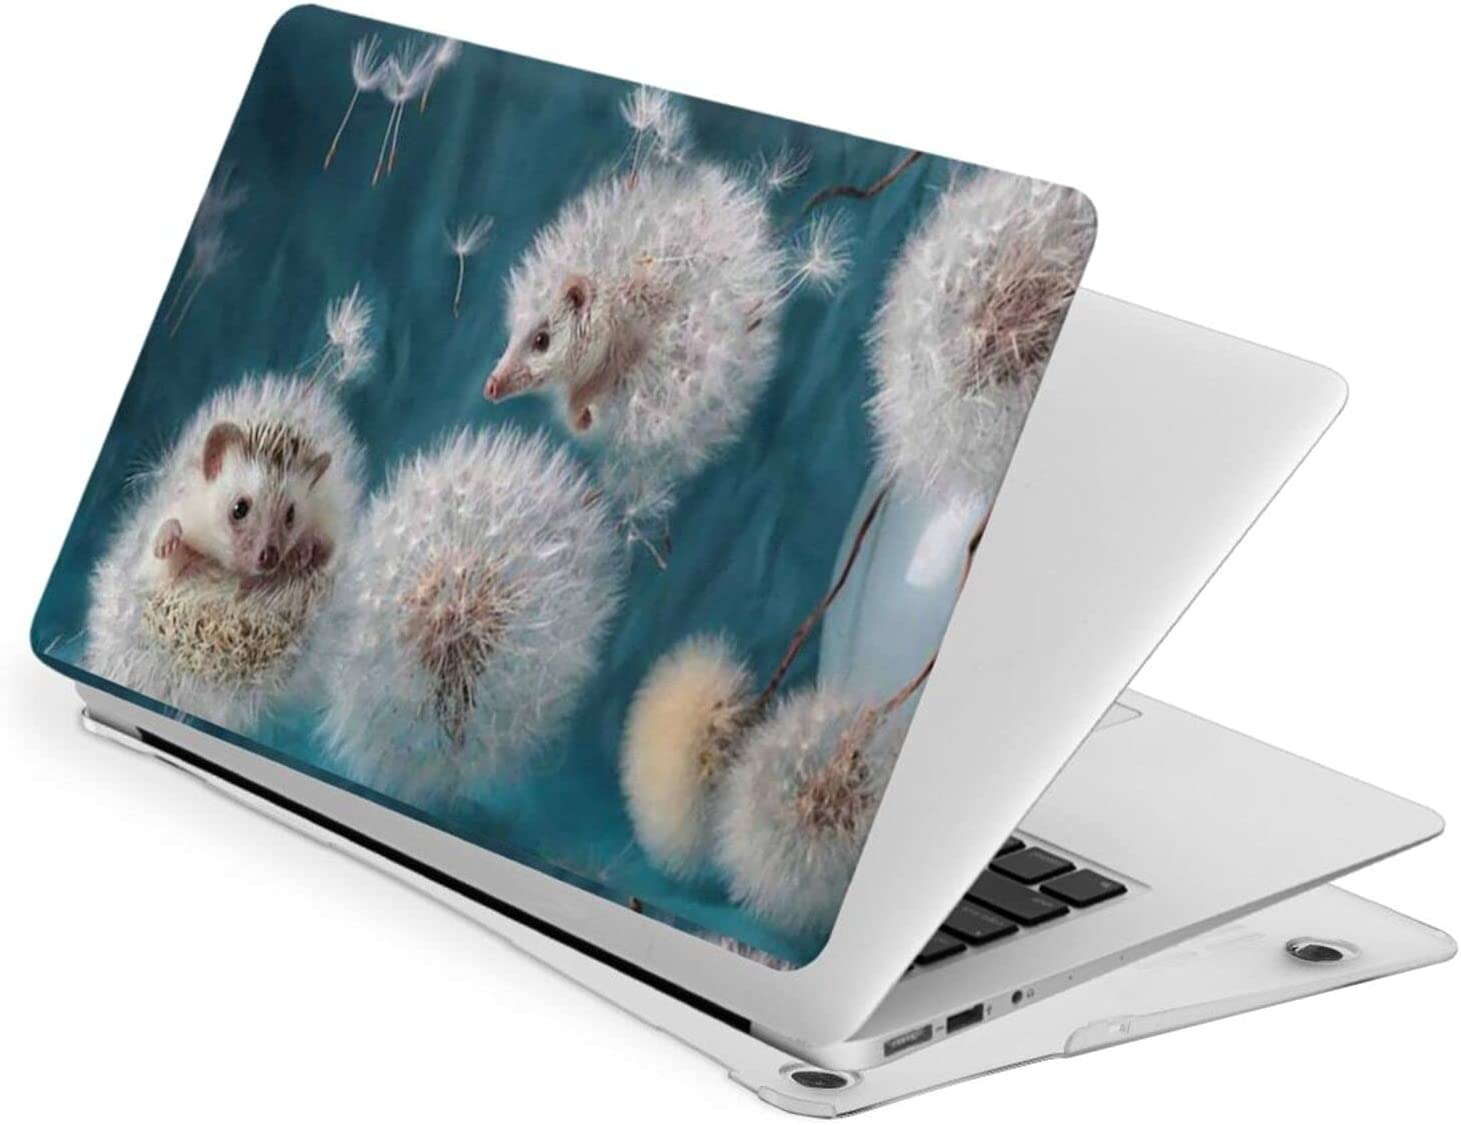 FSERSANHW Dandelion Hedgehog Case Laptop Protective Shell Smooth National products Max 63% OFF